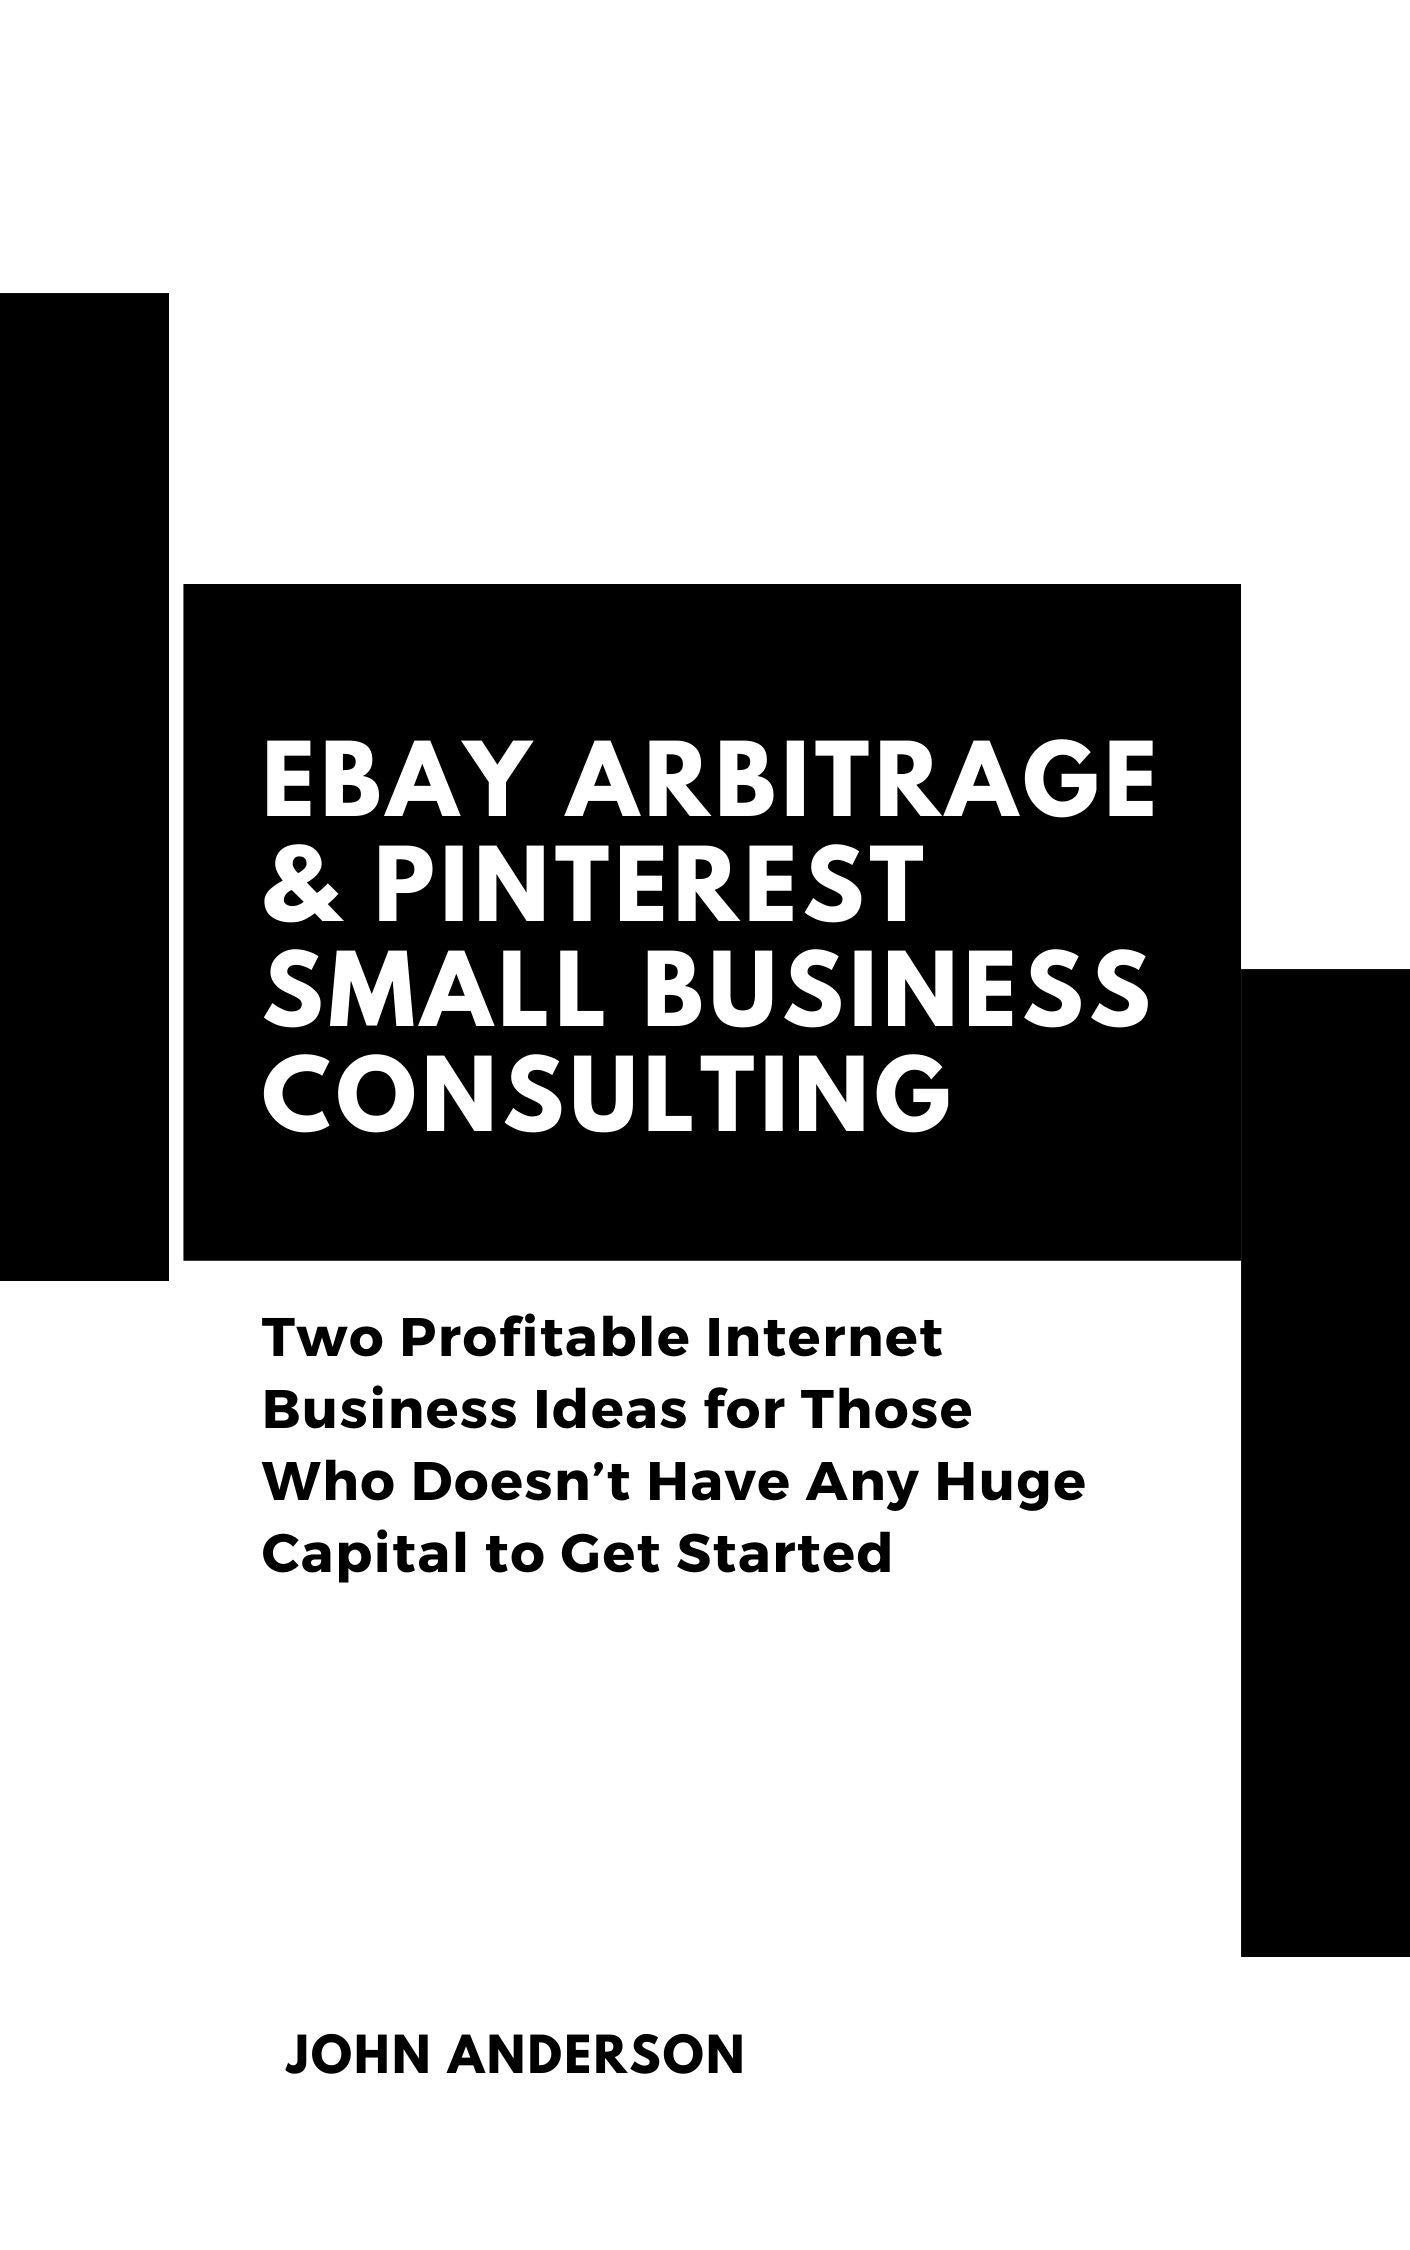 eBay Arbitrage & Pinterest Small Business Consulting (Compilation): Two Profitable Internet Business Ideas for Those Who Doesn't Have Any Huge Capital to Get Started